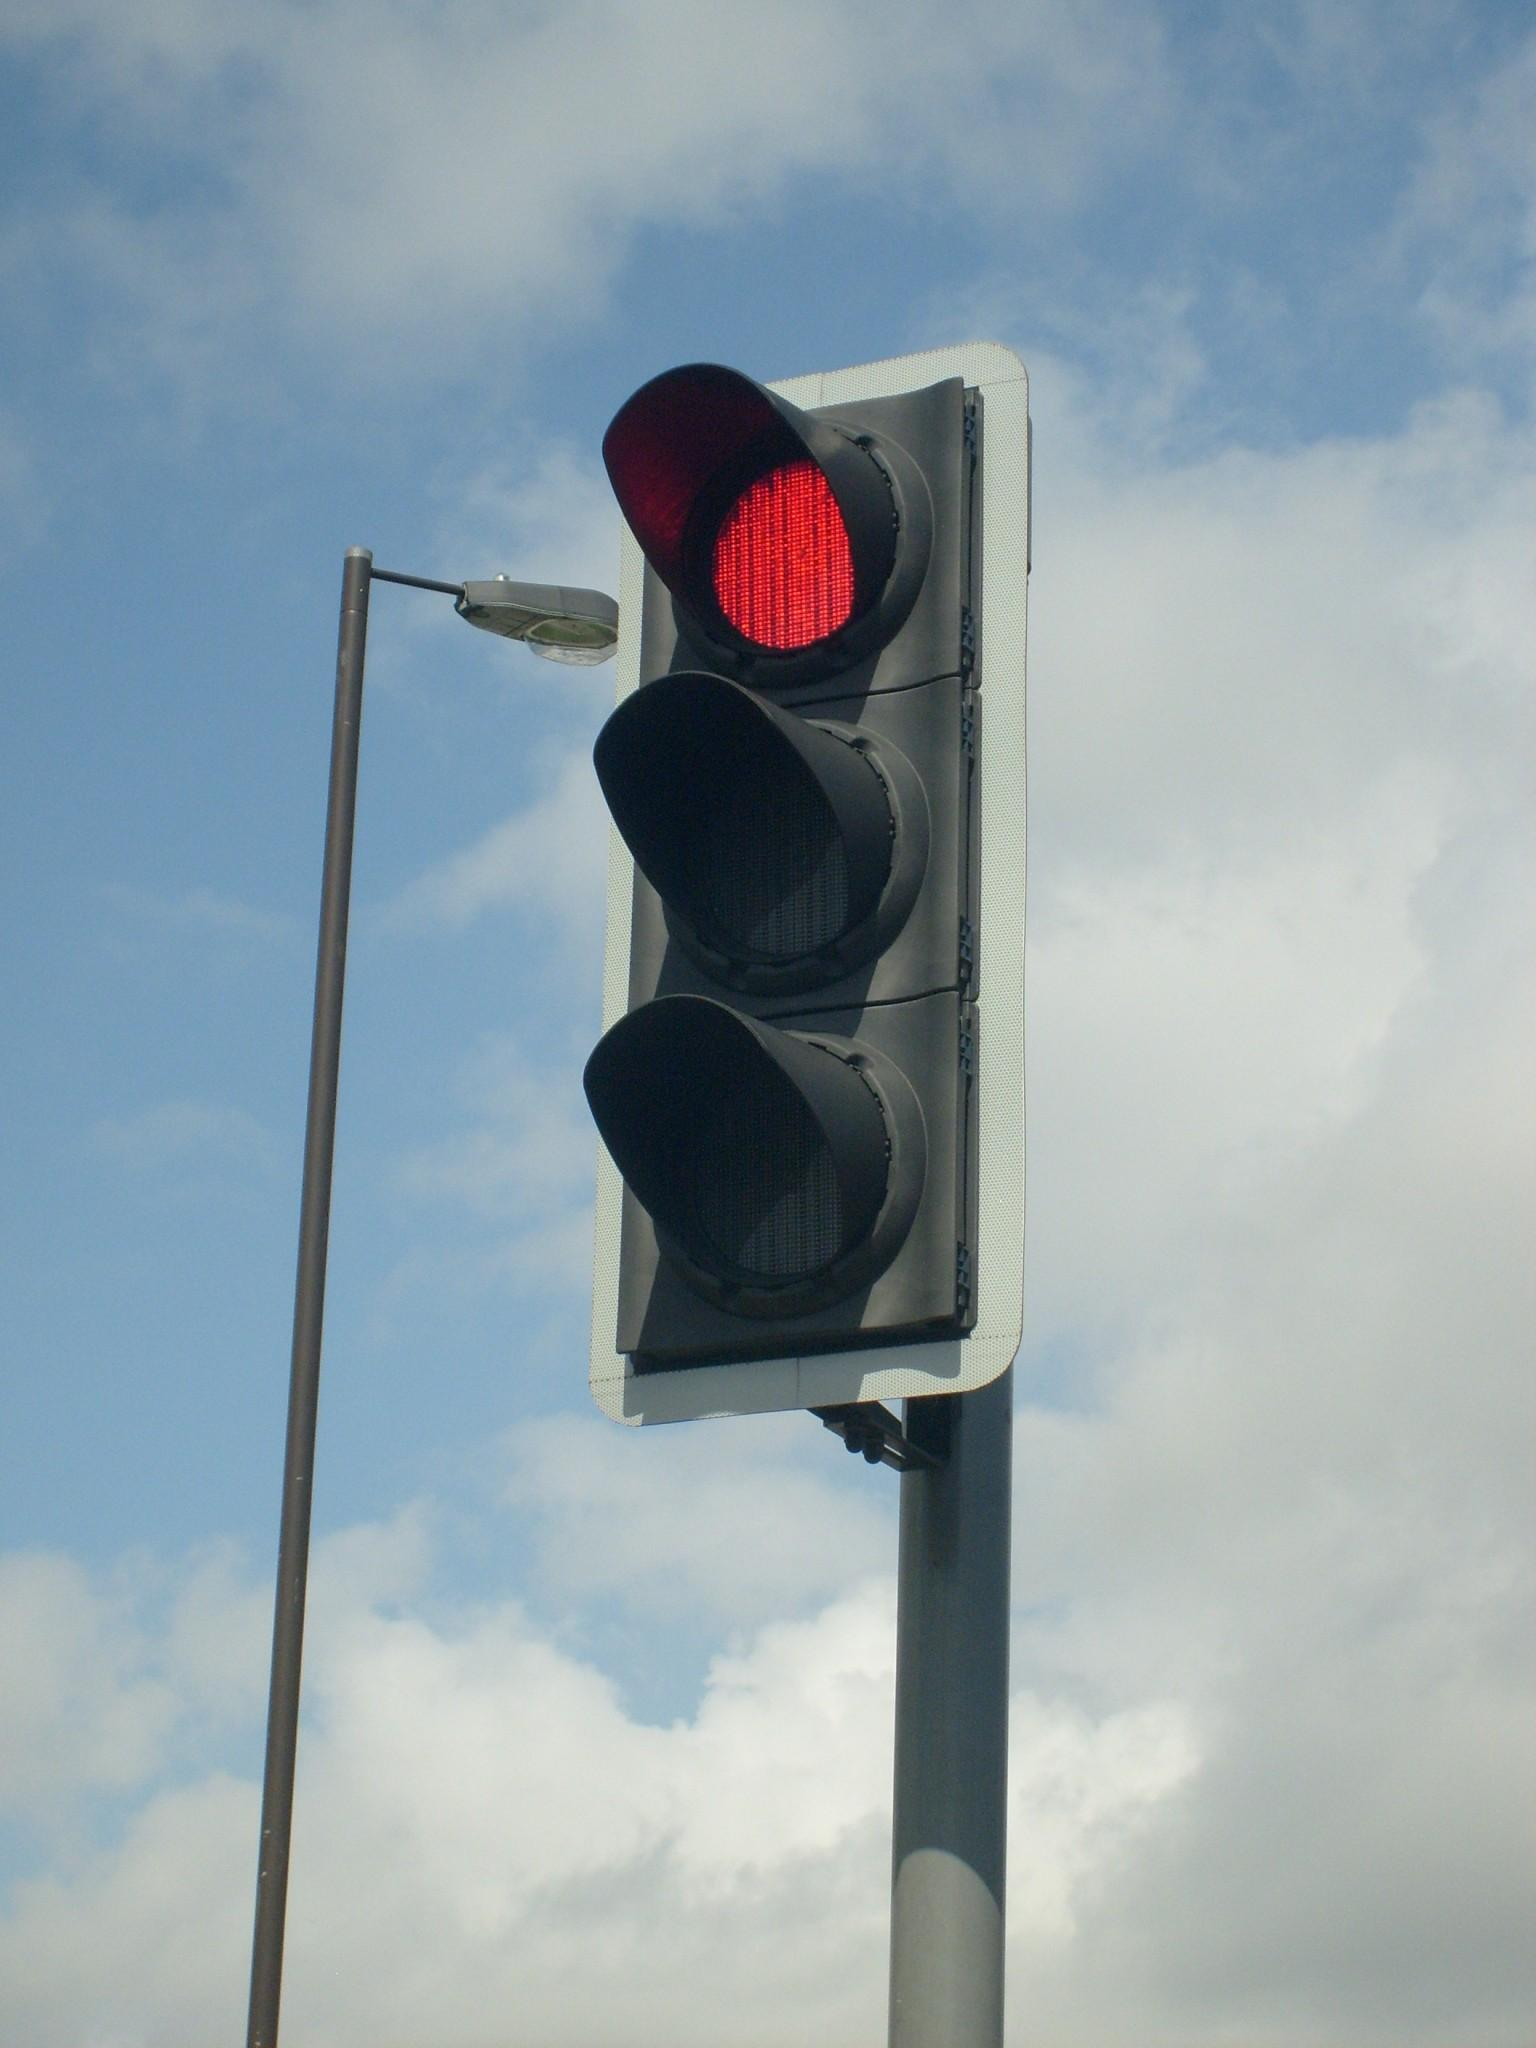 Proposal To Ban Red Light Cameras In Colorado Passes In Committee